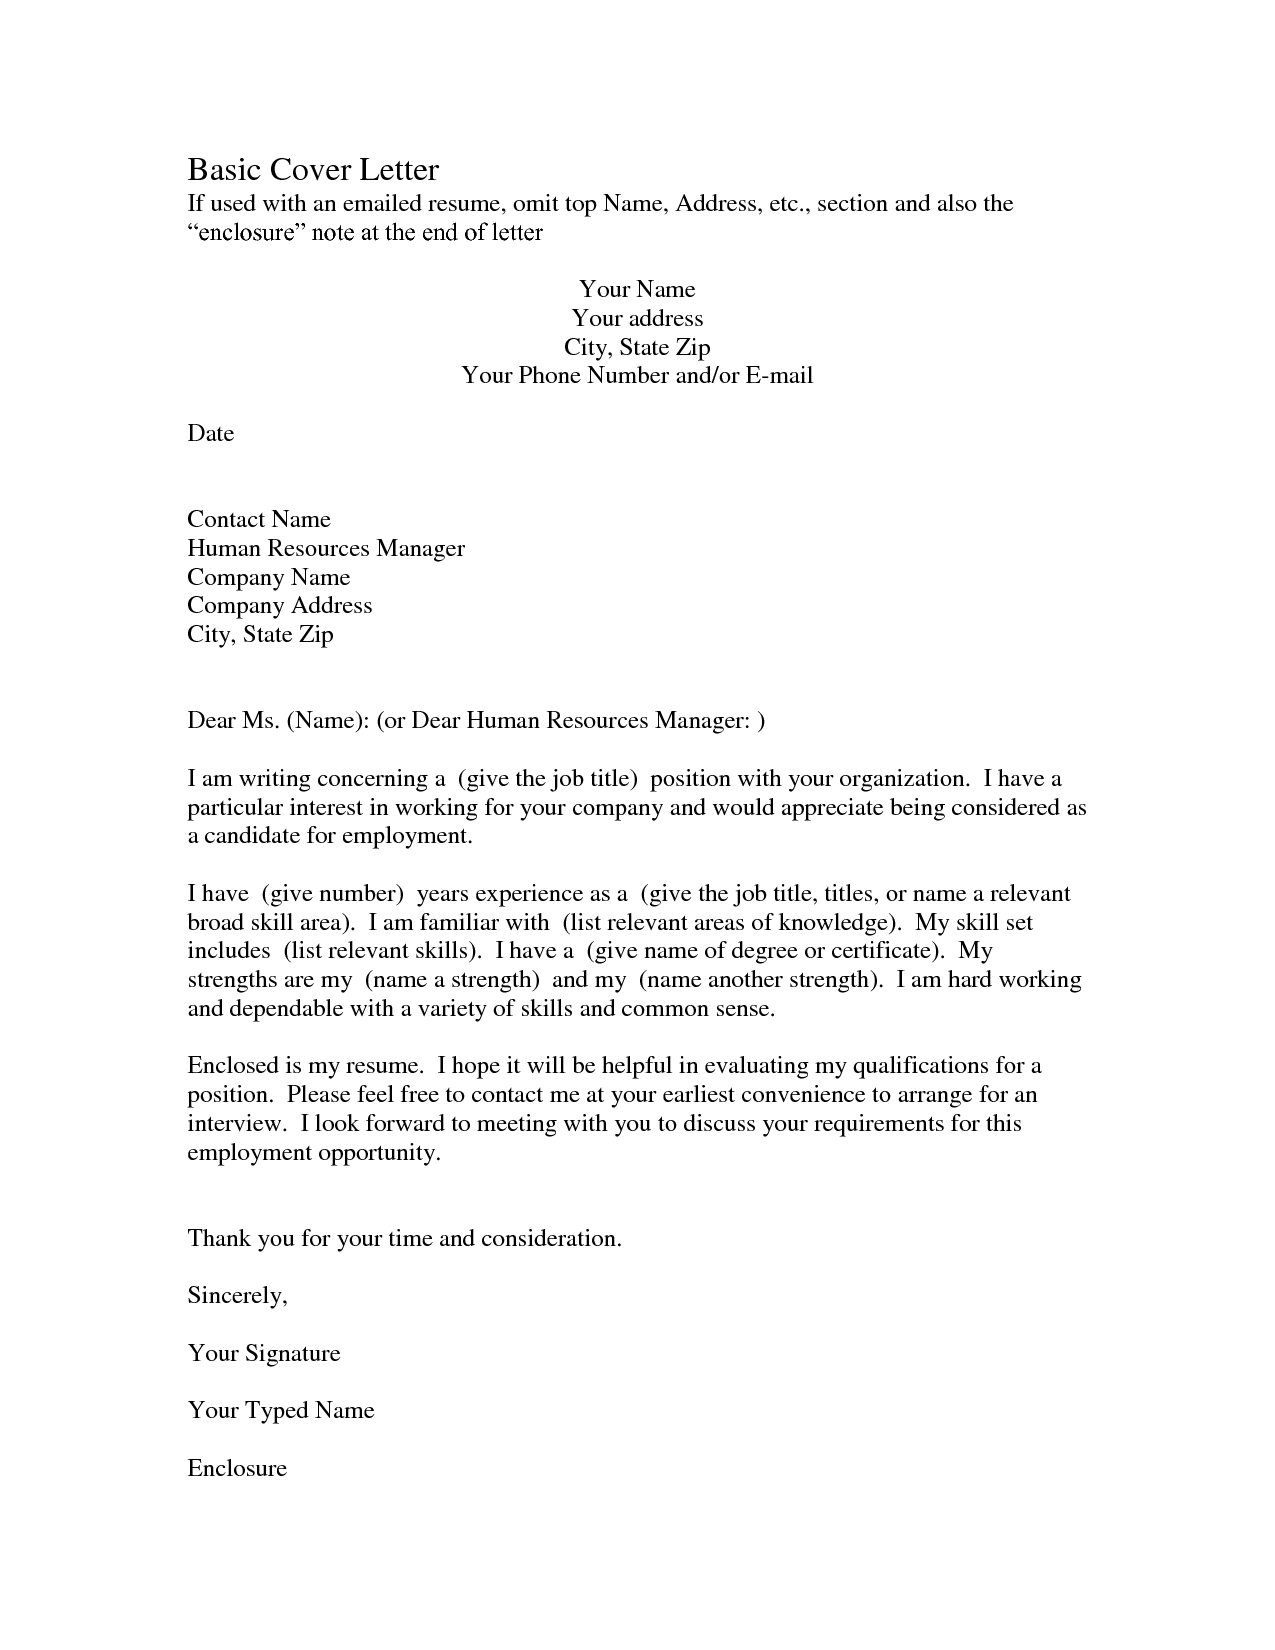 Covering Letter Example Simple Cover Letter ExampleSimple Cover – Simple Cover Letter for Resume